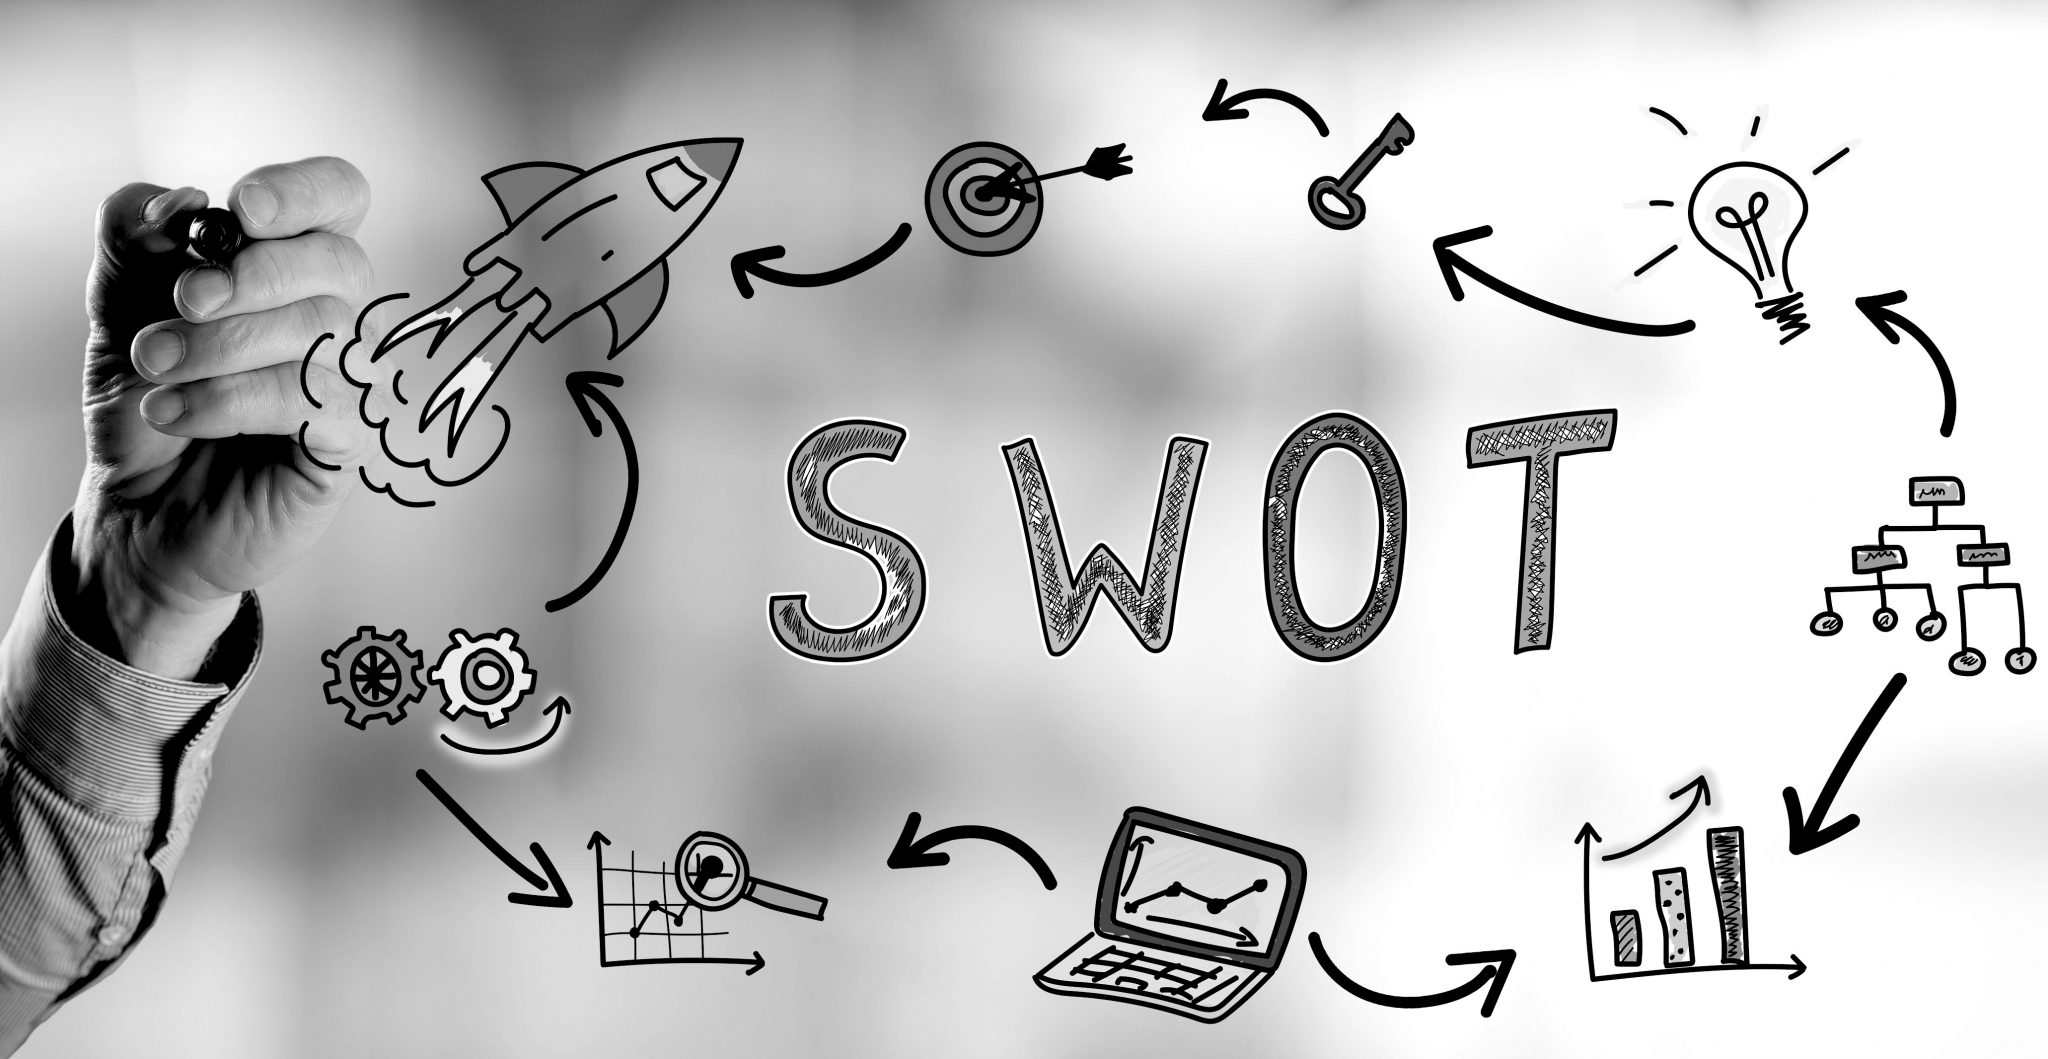 Swot analysis clipart free black and white svg transparent download How NOT to S.W.O.T | Creative Plus Business svg transparent download